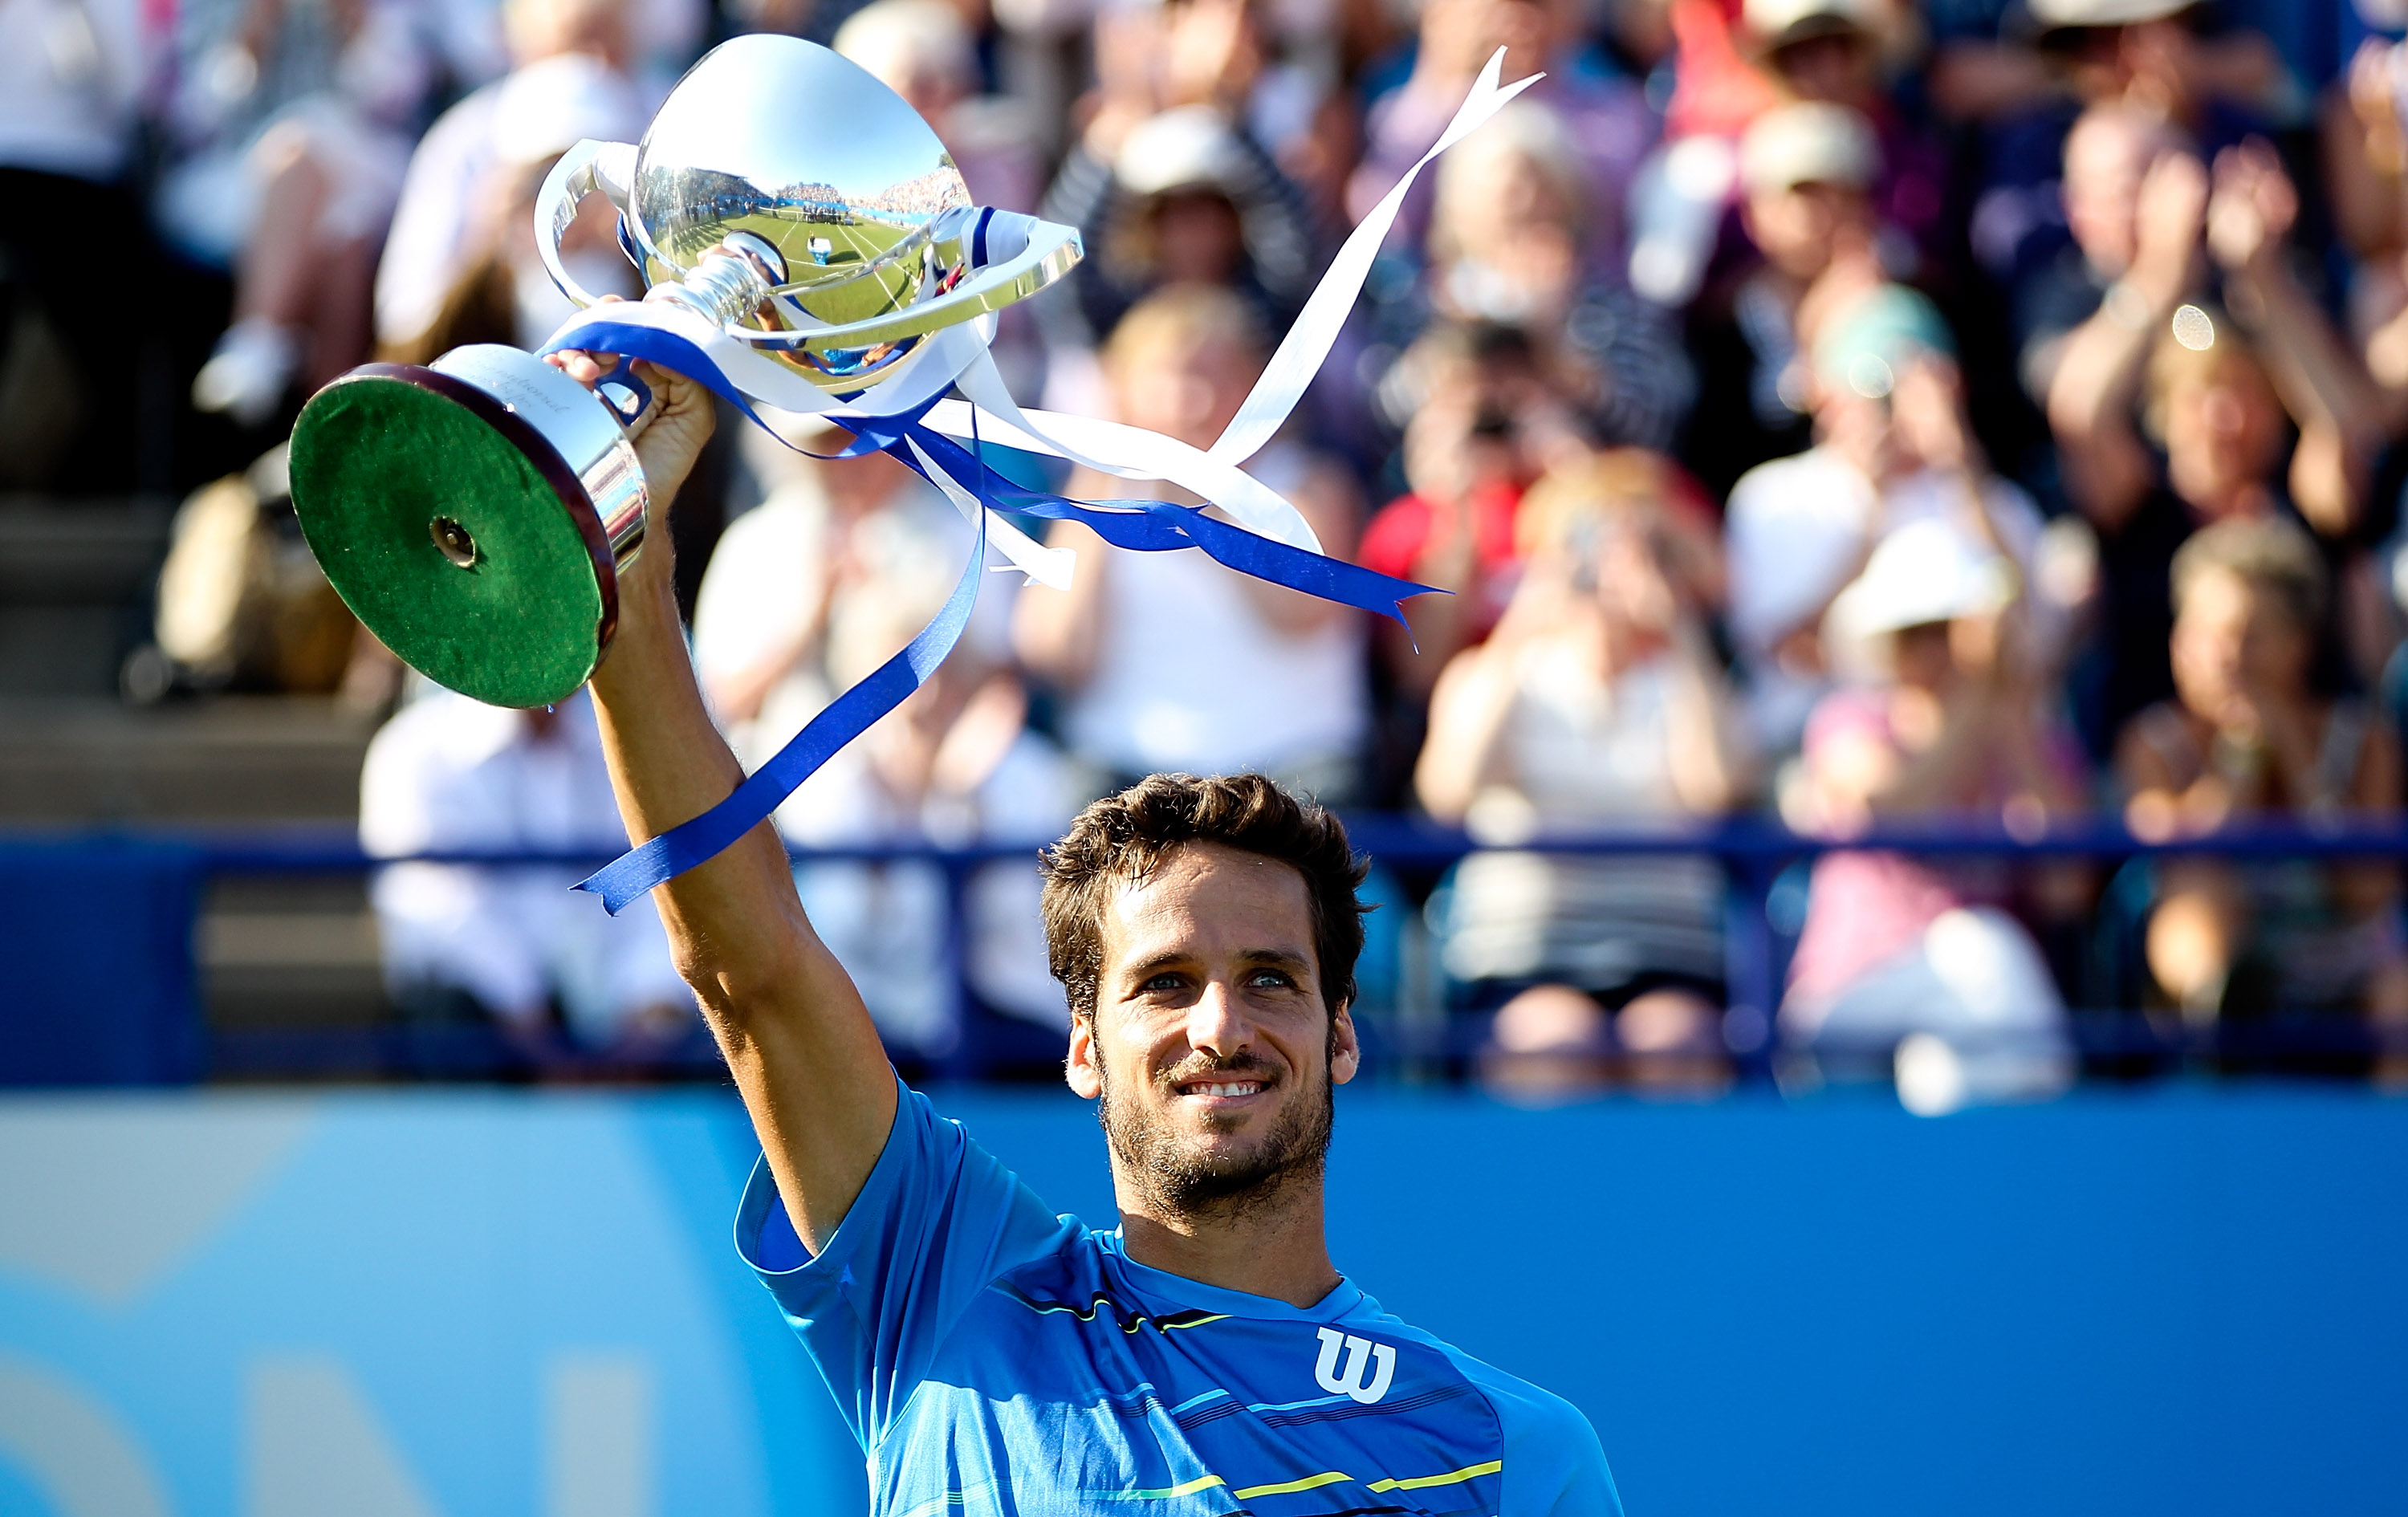 Feliciano Lopez wins the Aegon International in Eastbourne.